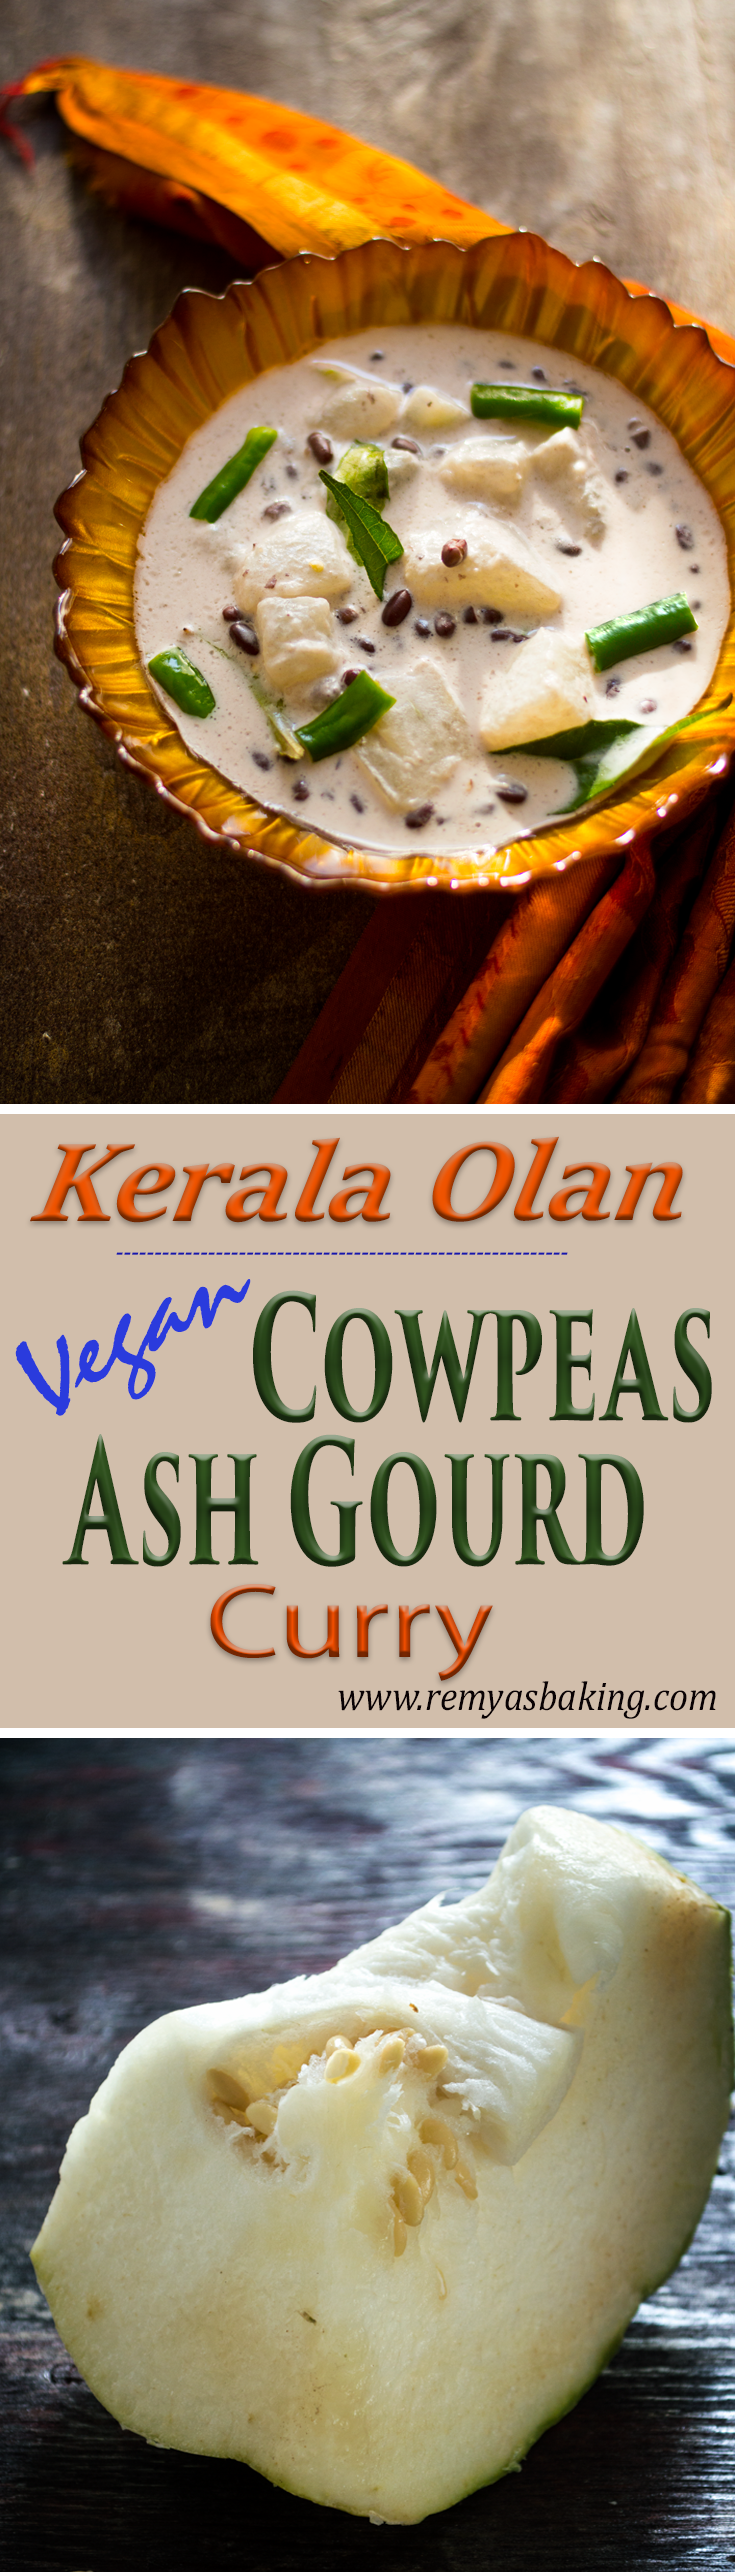 Kerala Olan/ Vegan cowpeas ash gourd curry Recipe